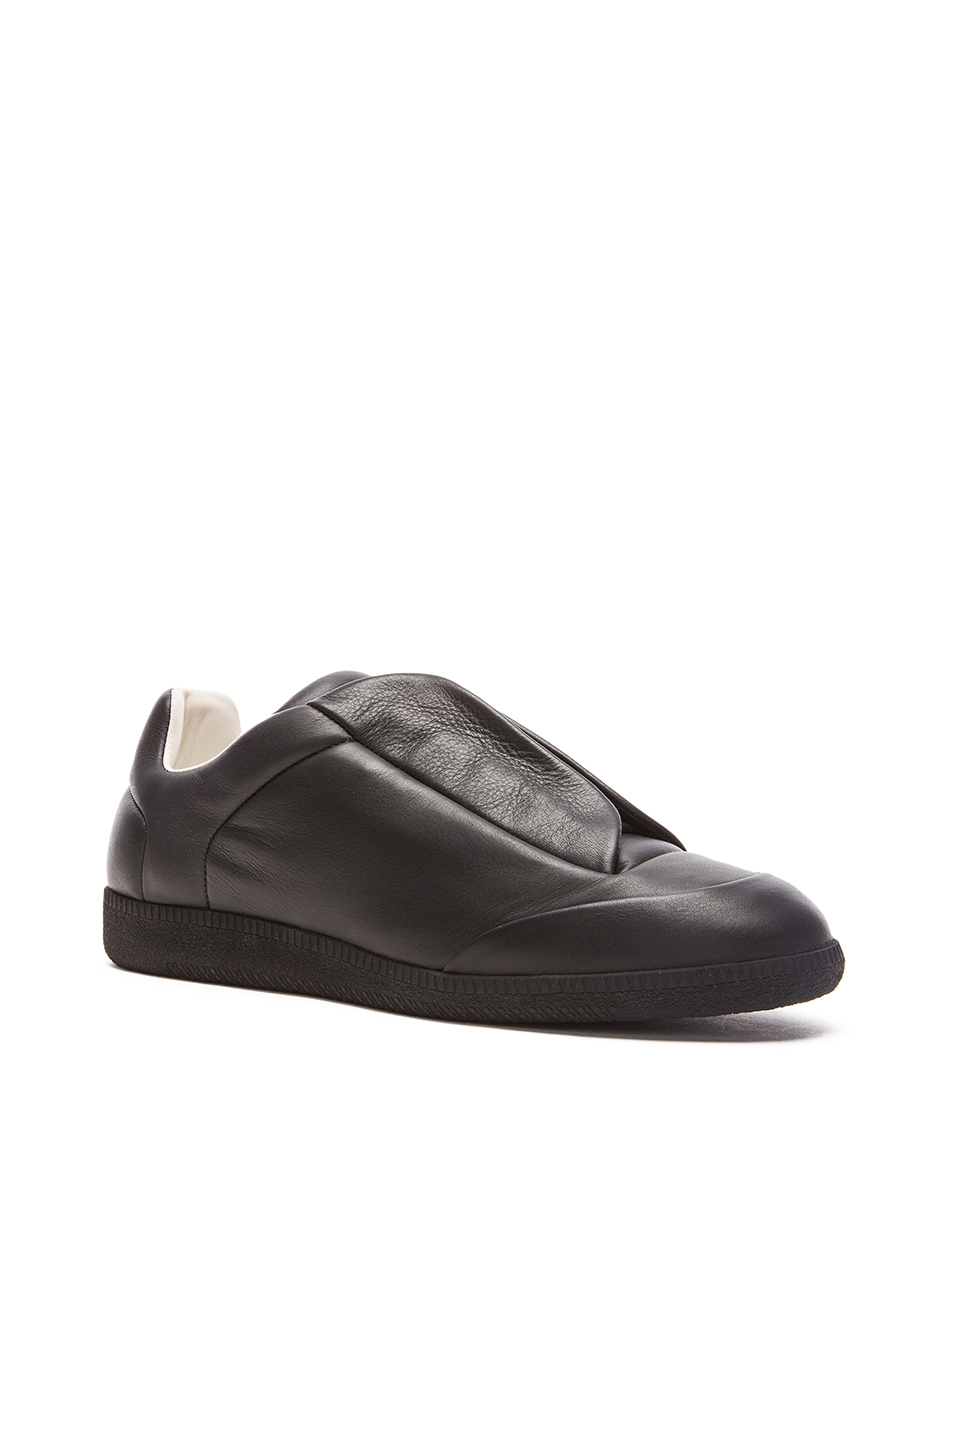 Photo of Maison Margiela Future Leather Low Tops in Black - shop Maison Margiela menswear